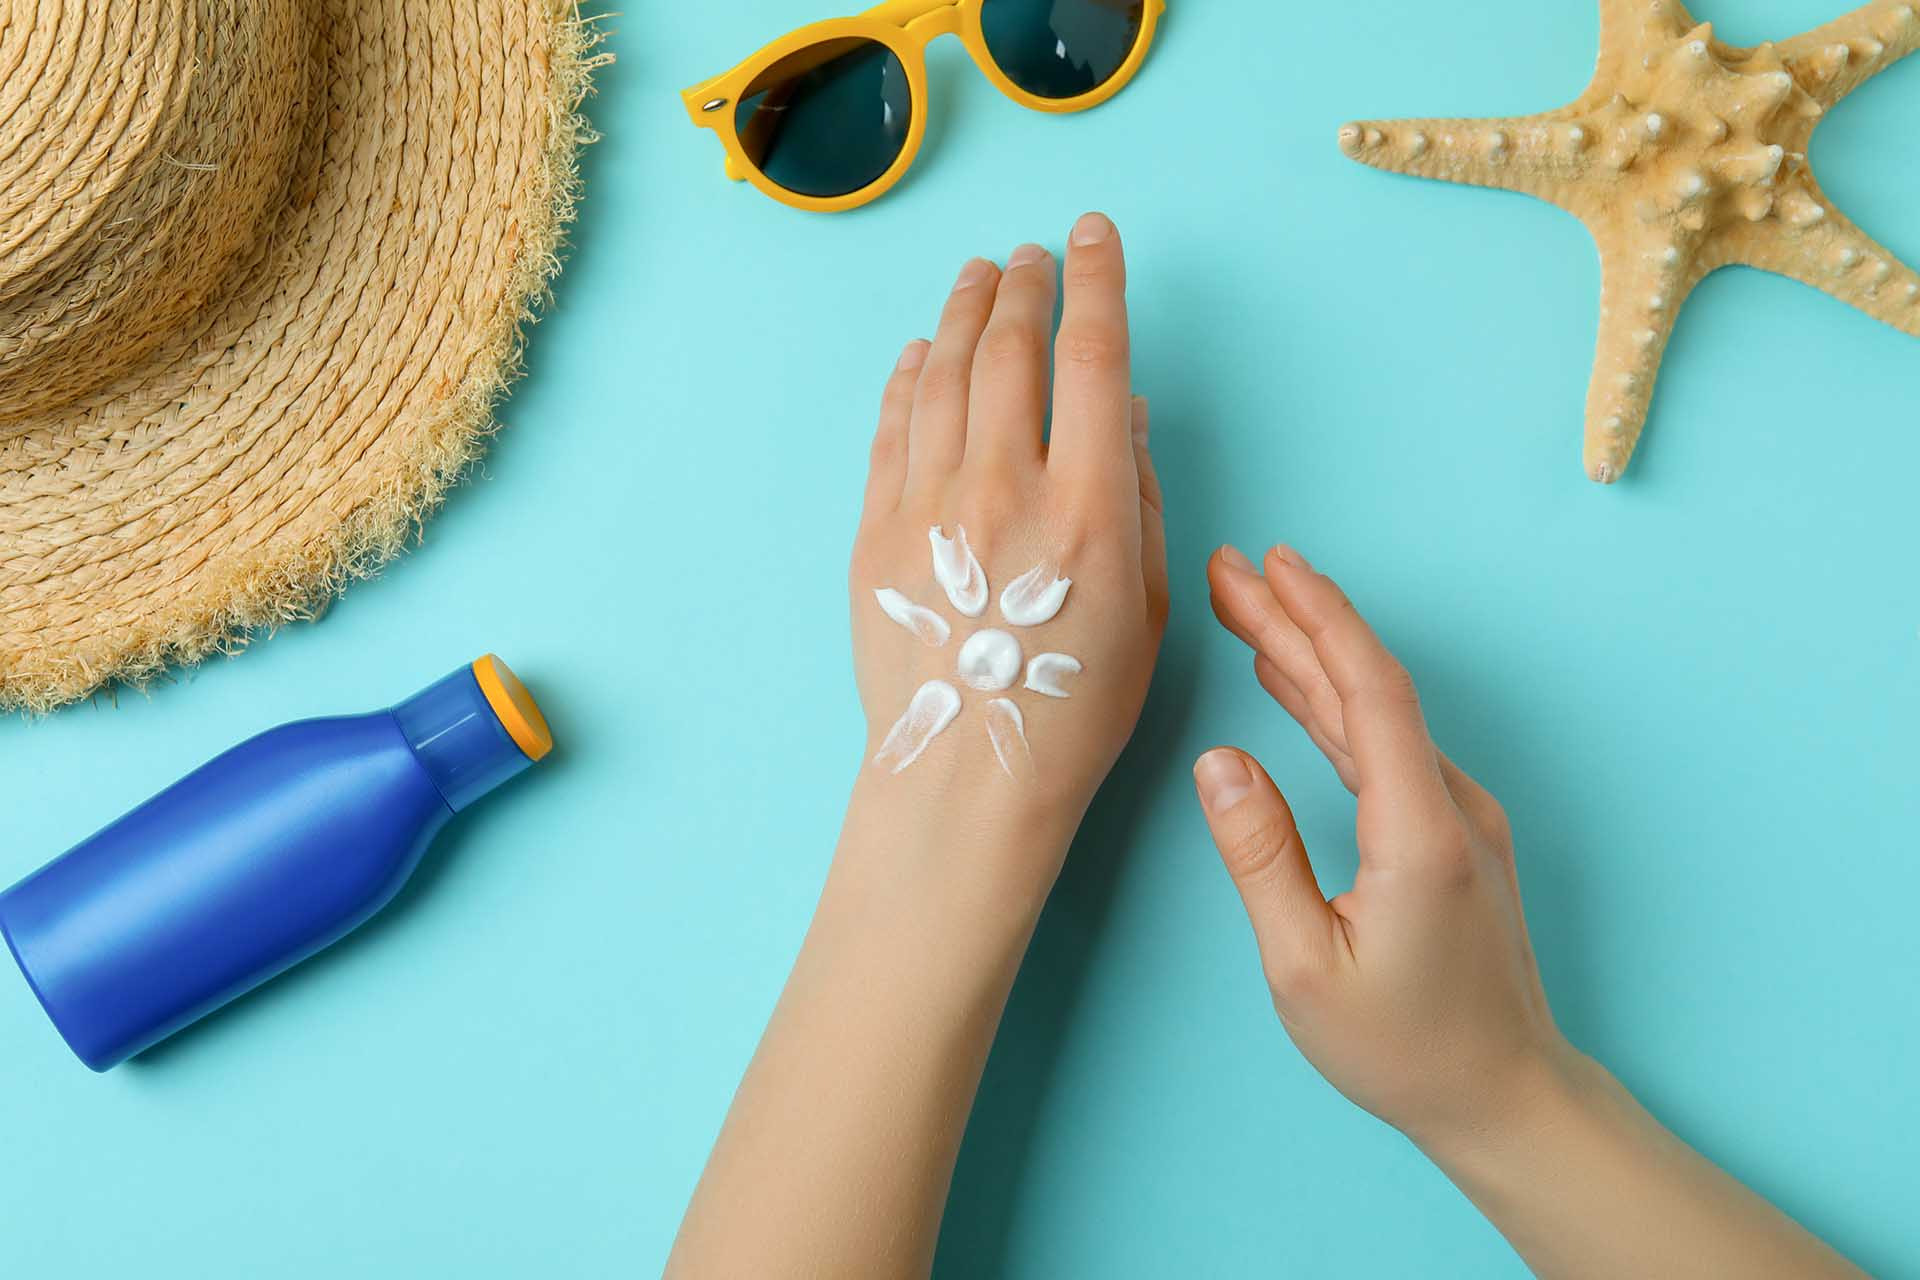 sunscreen on a persons hand